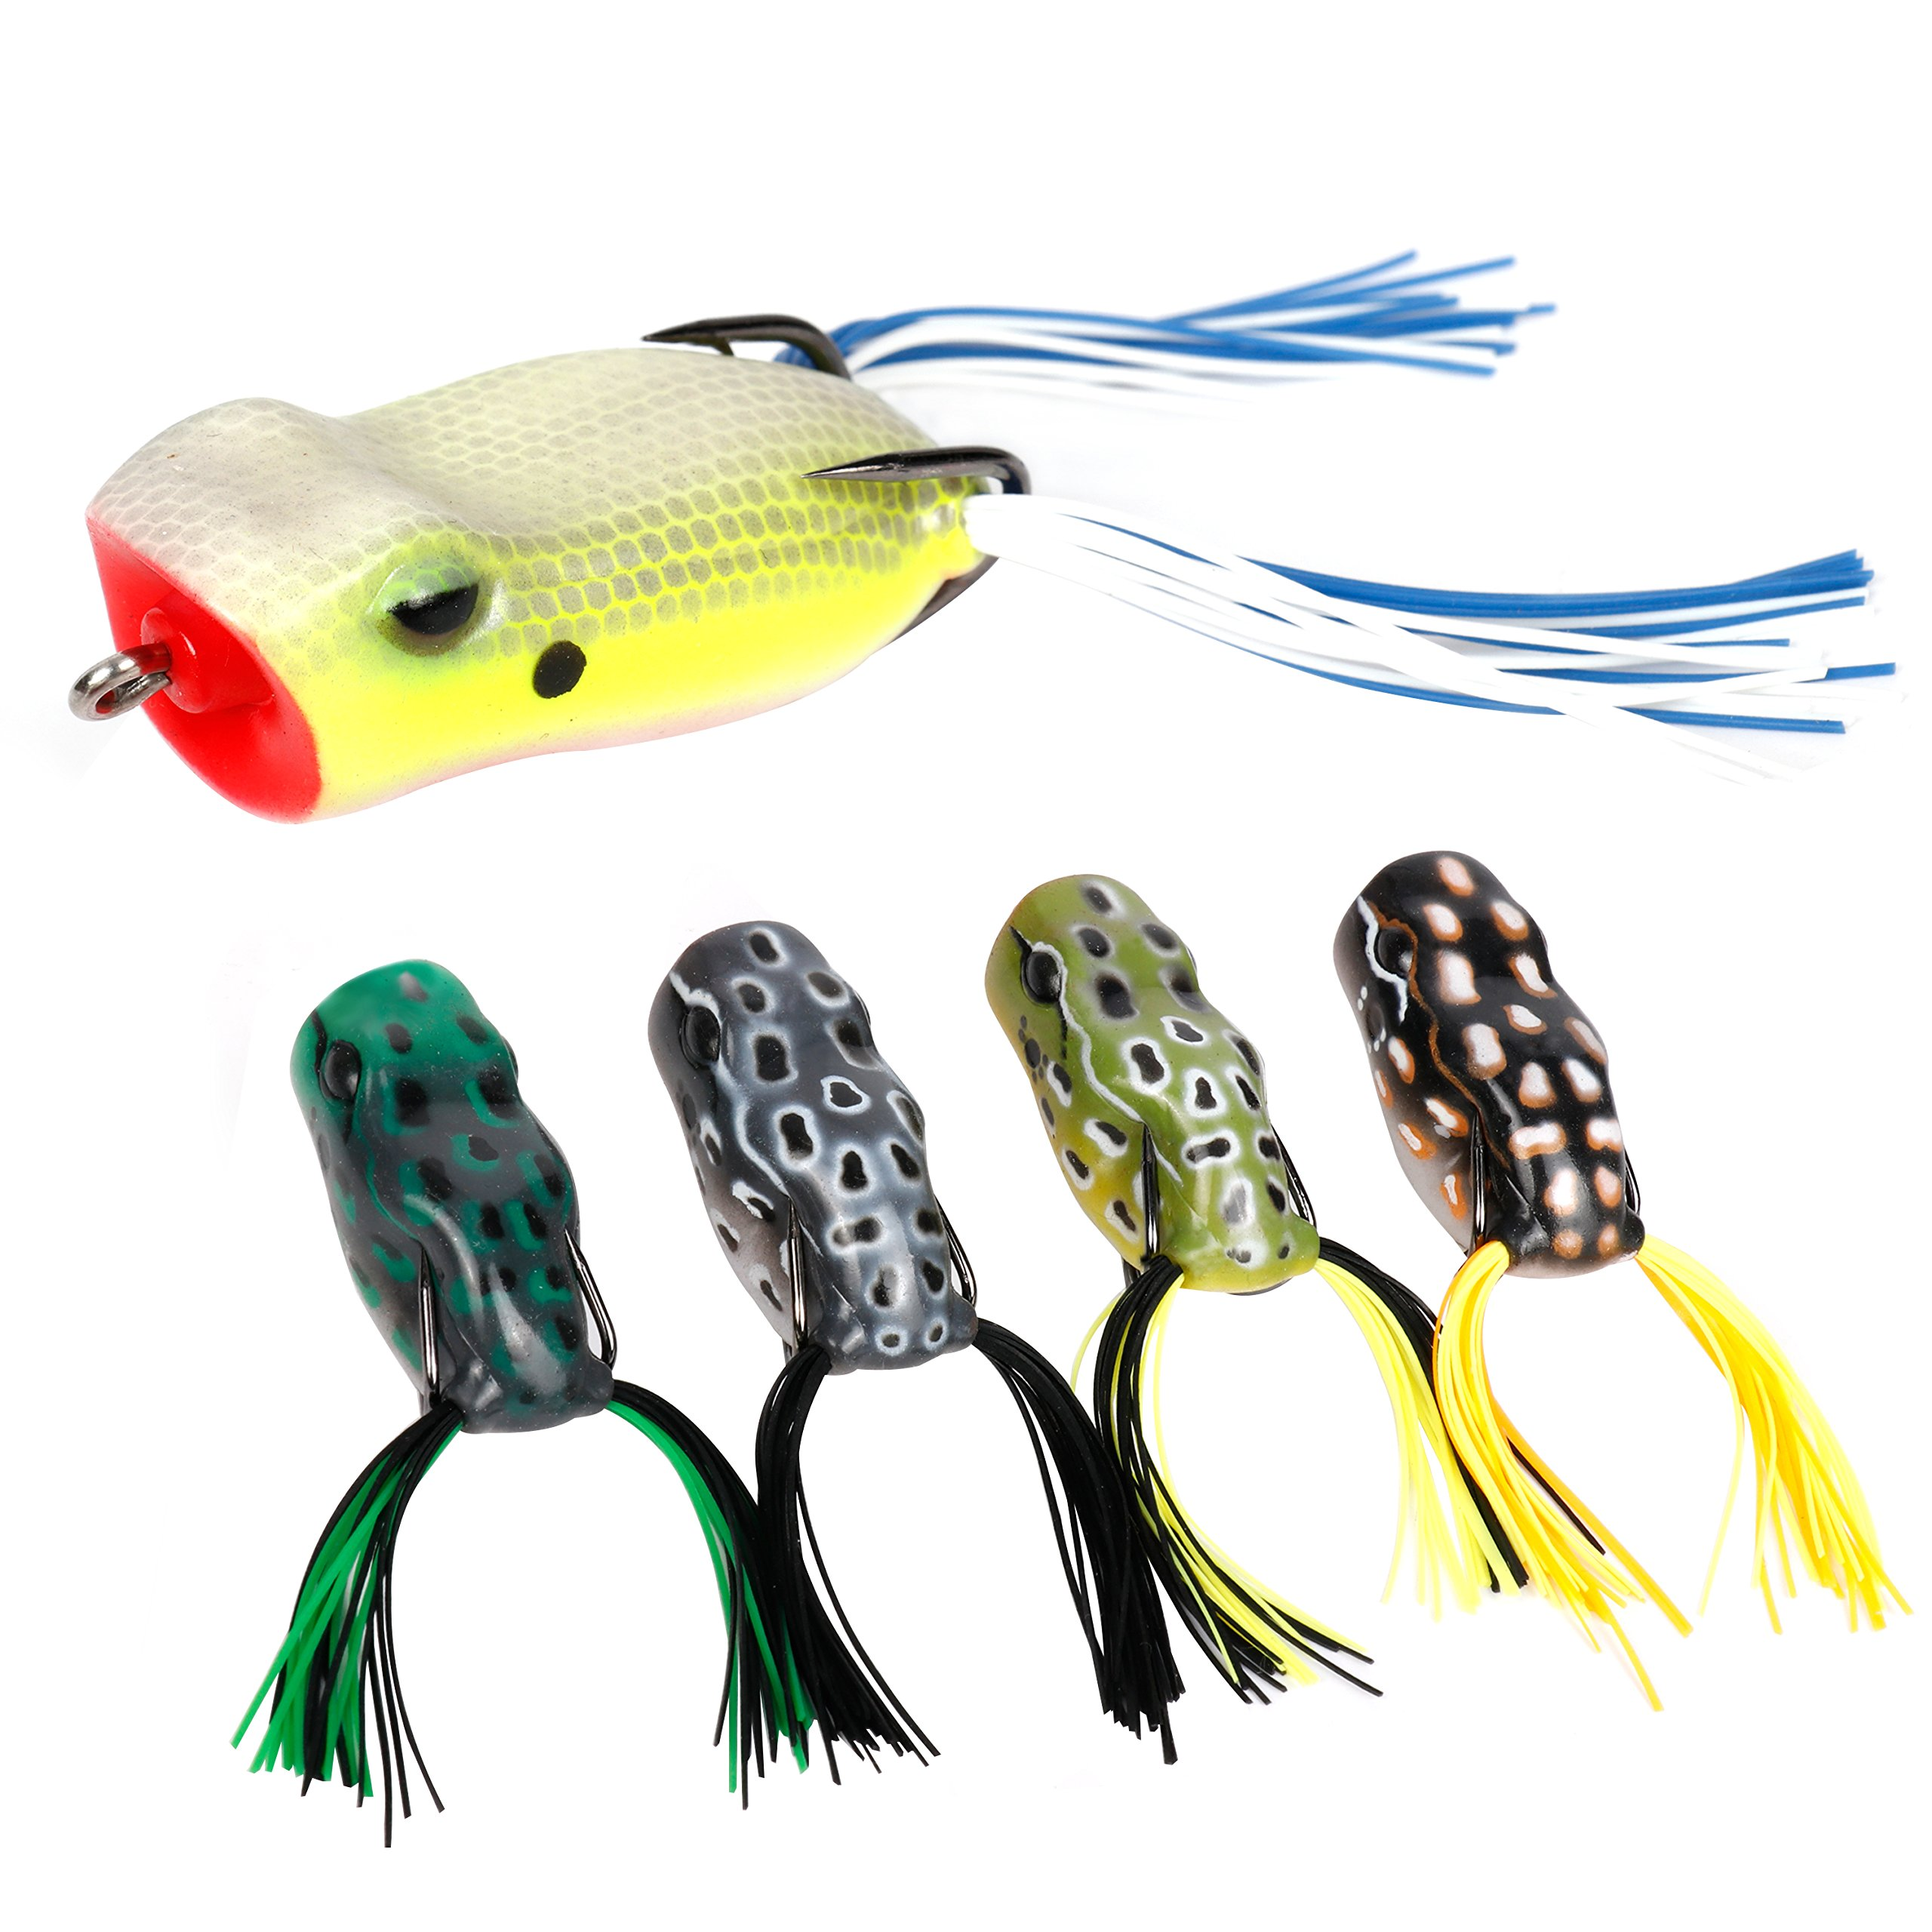 RUNCL Topwater Frog Lures with Twin Skirts, Soft Fishing Lure Kit with Tackle Box for Bass Pike Snakehead Dogfish Musky (Pack of 5) by RUNCL